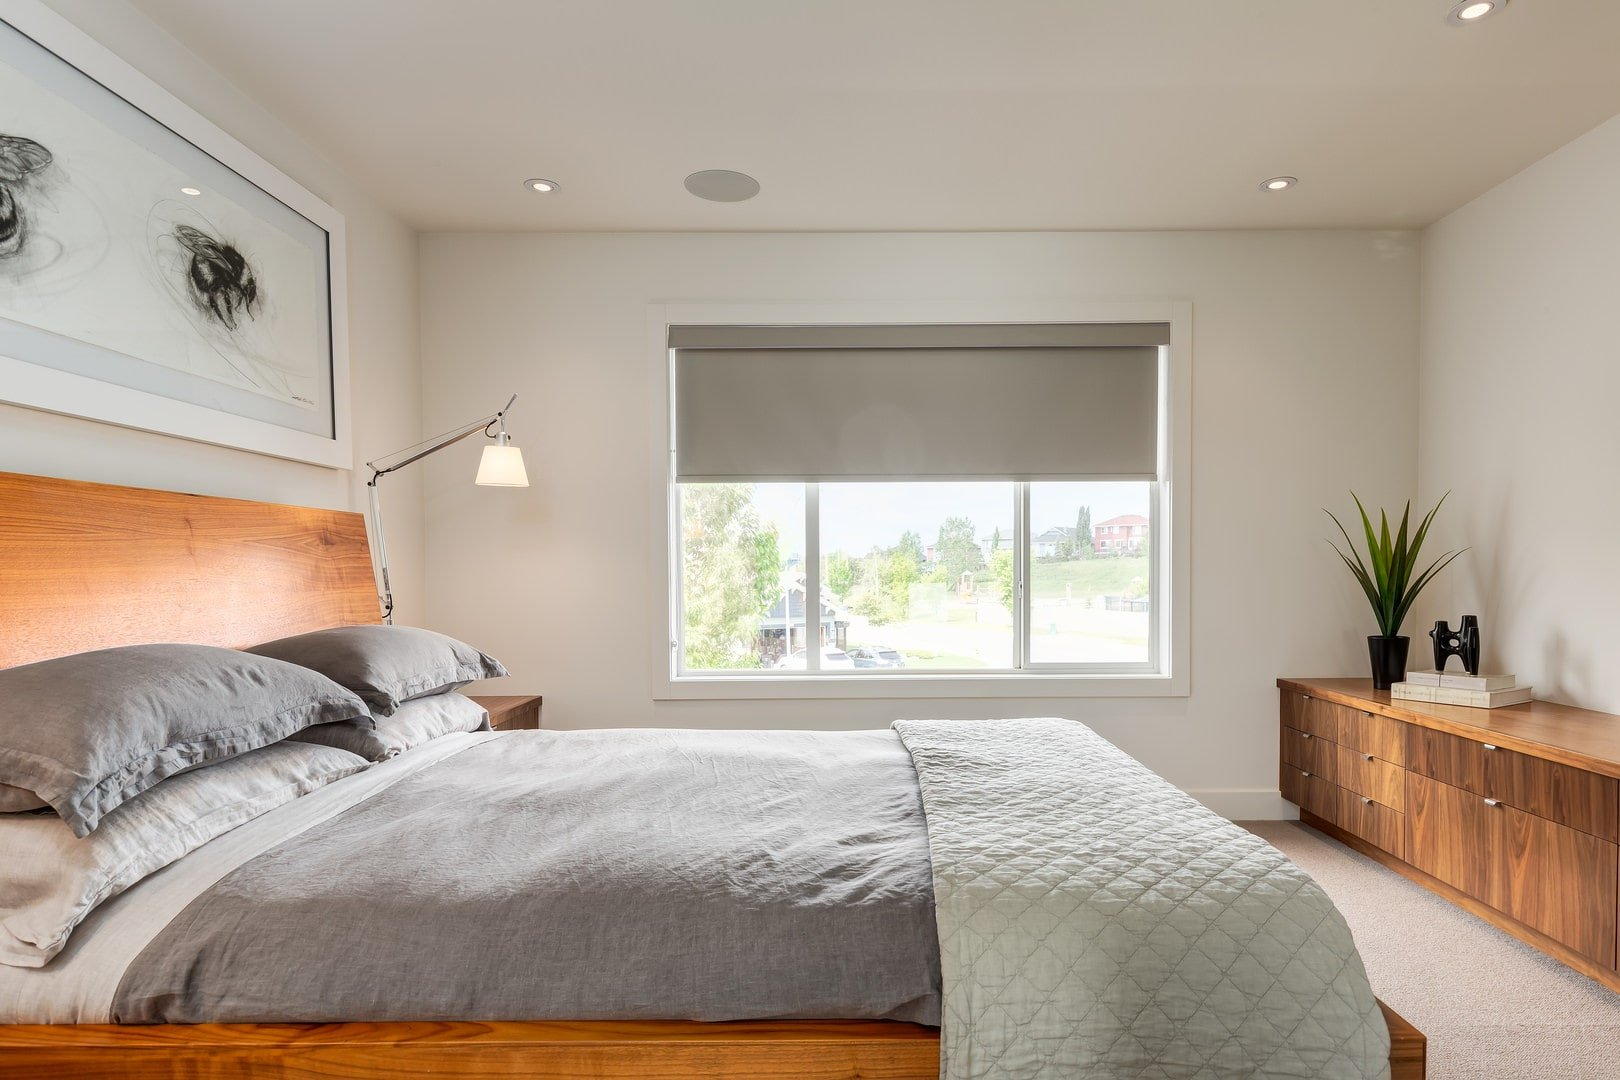 A white framed wall art hangs above the wooden bed matching with the nightstand and console table. This room has beige carpet flooring and glass paneled windows covered in a roller blind.